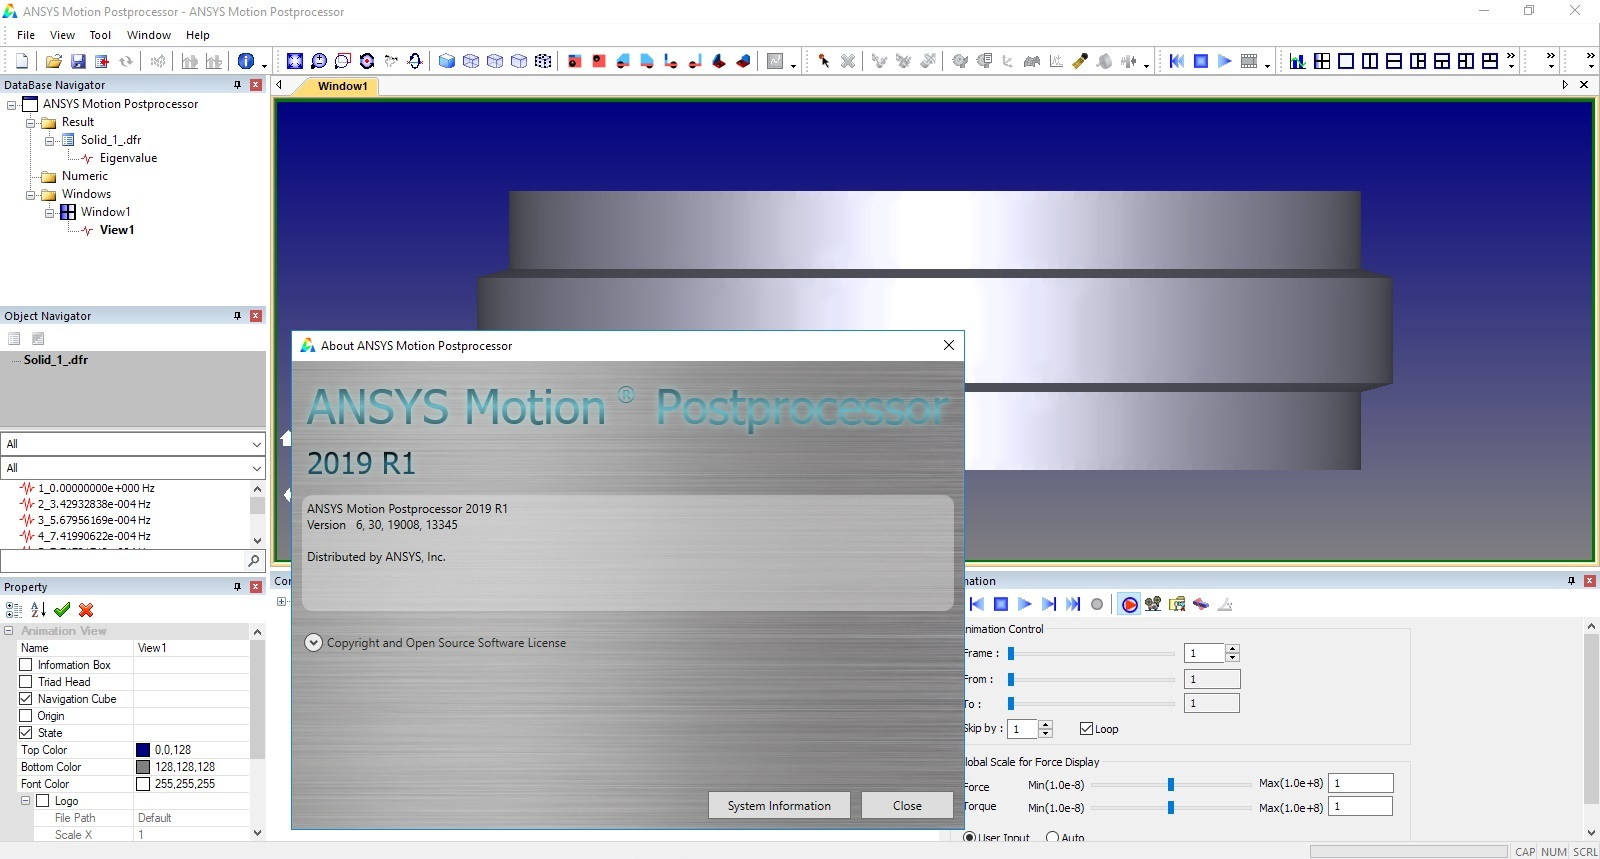 Working with ANSYS Motion 2019 R1 full license